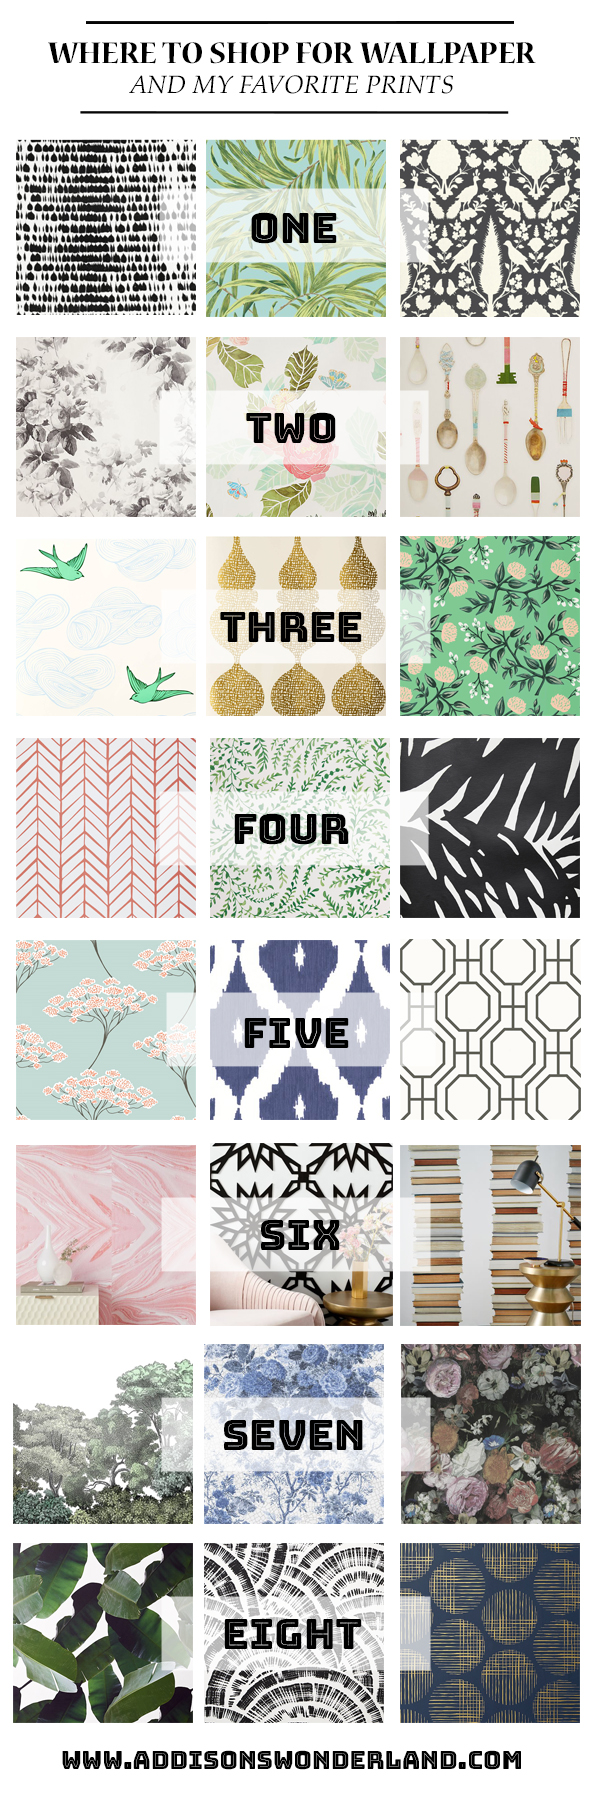 My Top 8 Places to Shop for Wallpaper & My Favorite Patterns…